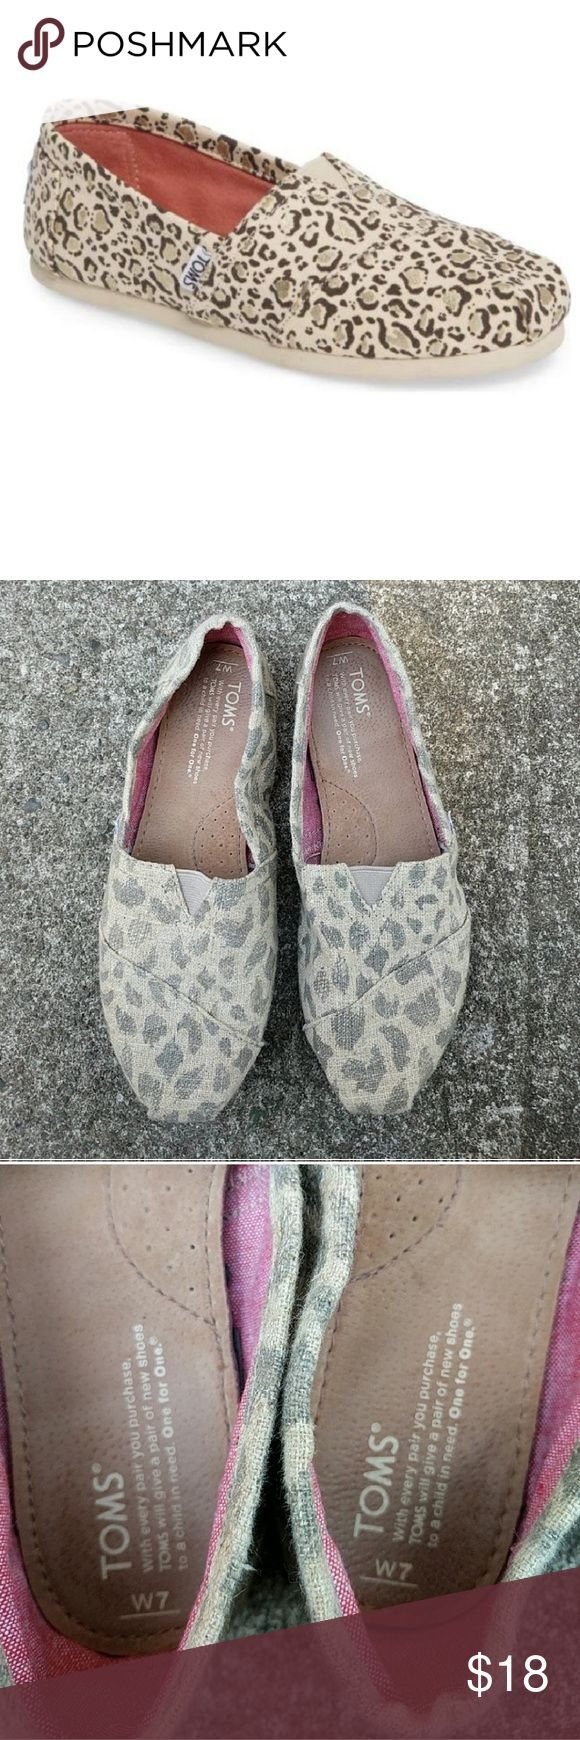 Leopard print burlap Toms Worn a few times great condition. Leopard / cheetah print super cute! Toms Shoes Flats & Loafers